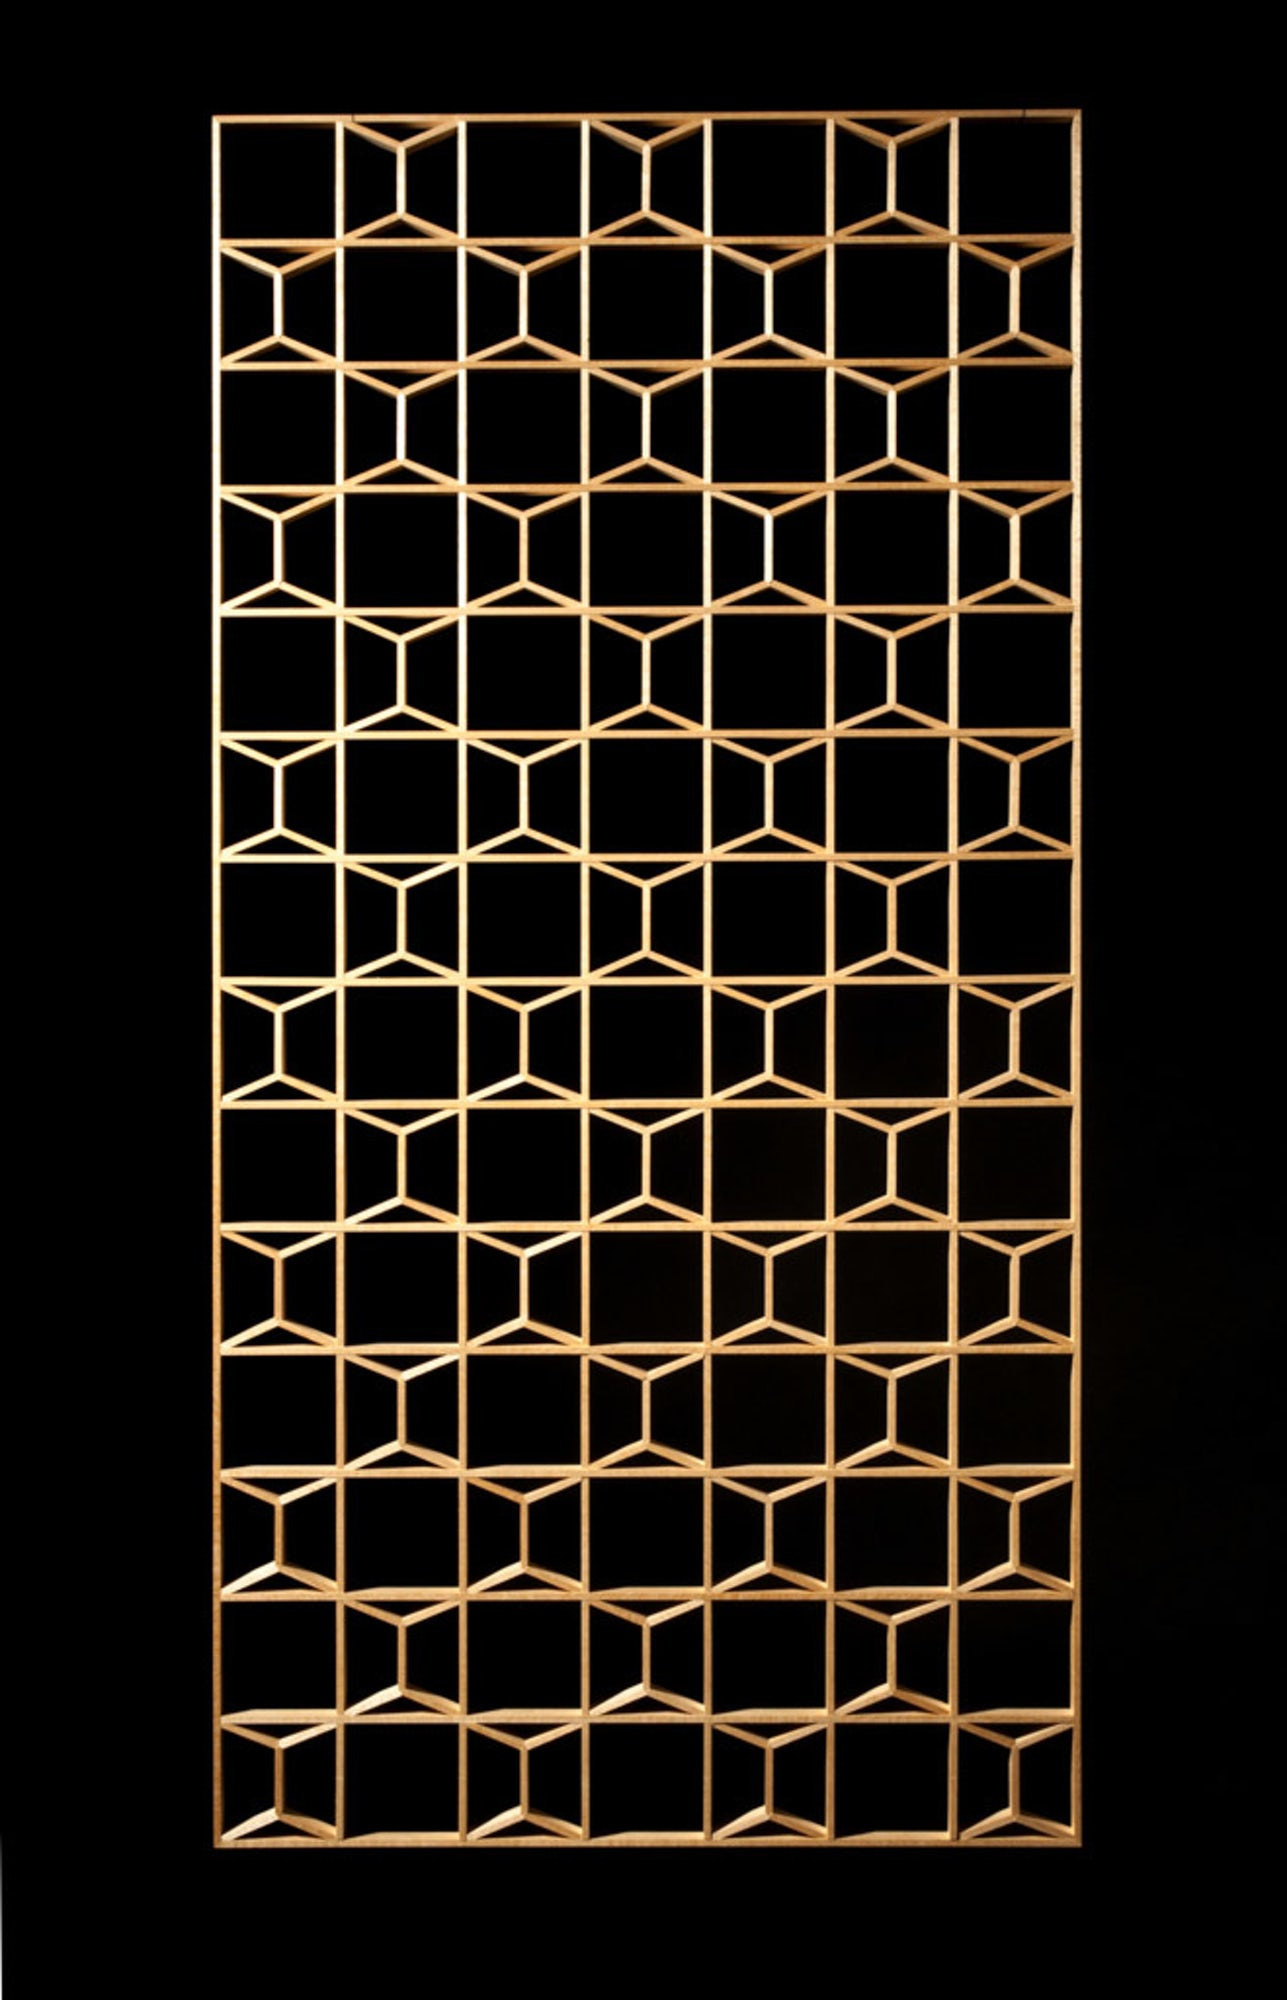 Hexagon screen